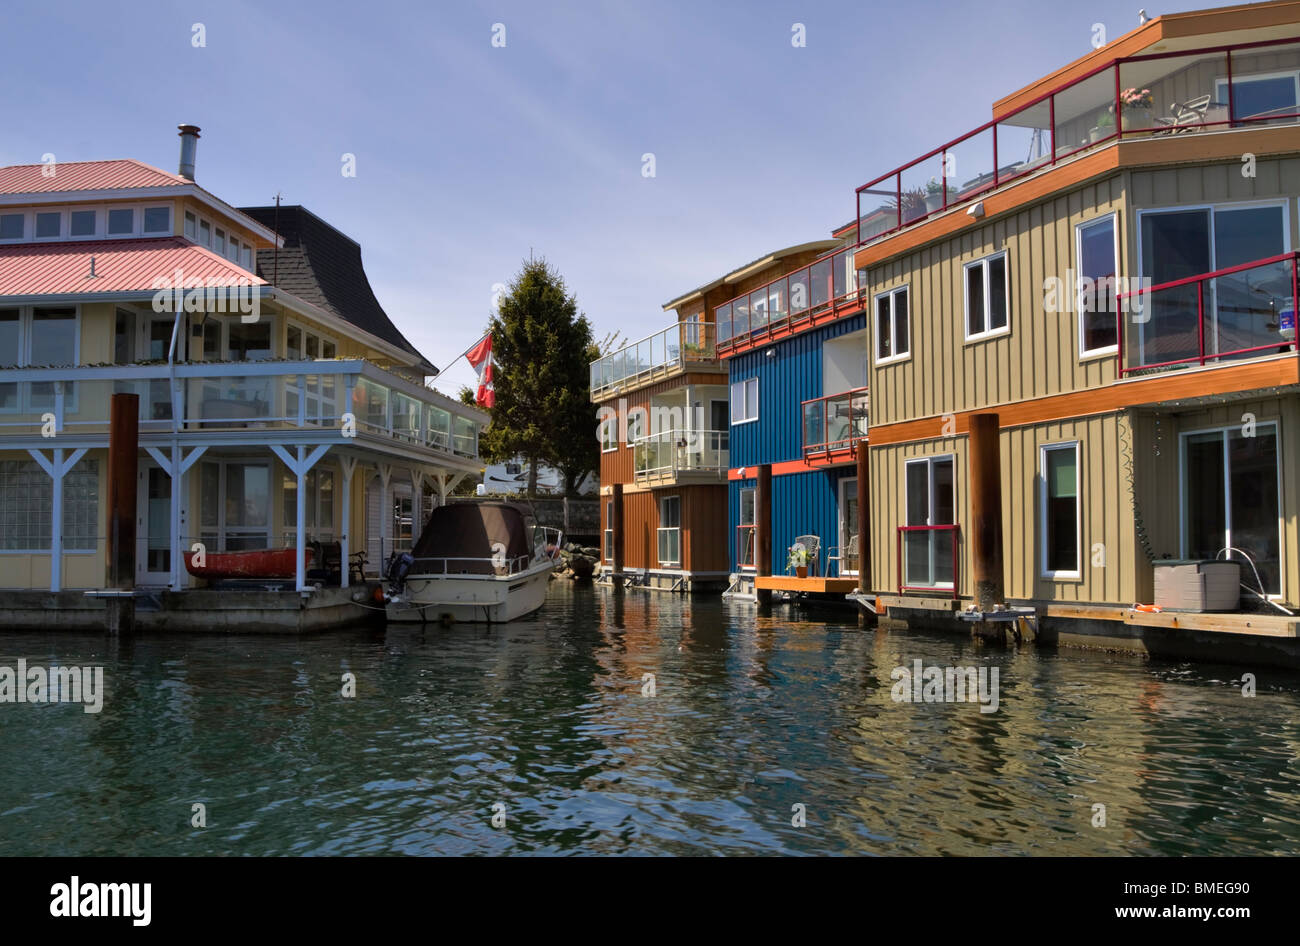 Floating homes in Westbay Marine Village, Middle Harbour, Victoria, British Columbia. - Stock Image